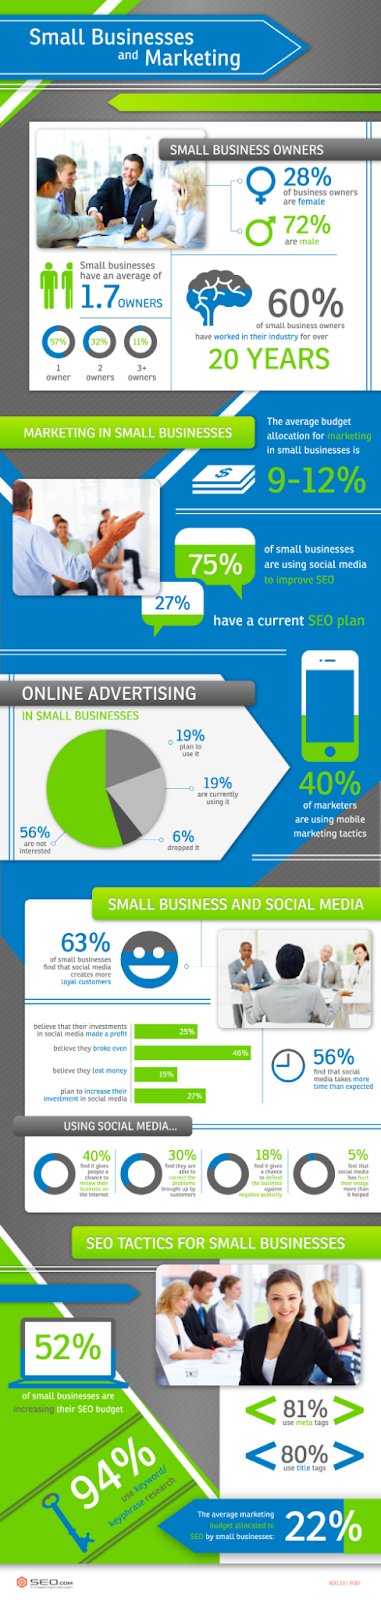 Small business marketing infographic.